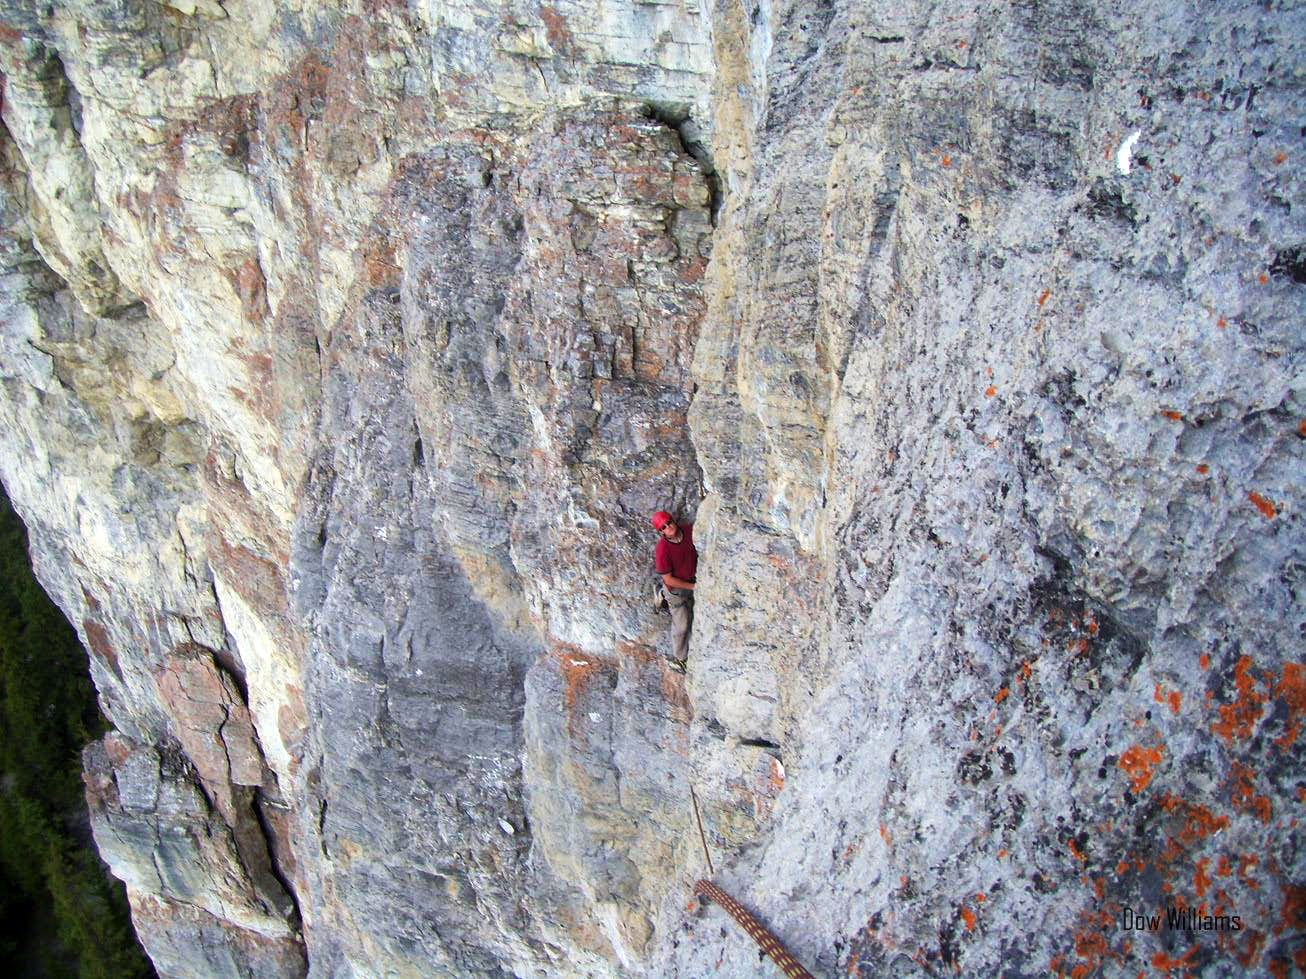 Yellow Edge, 5.10c-5.12a